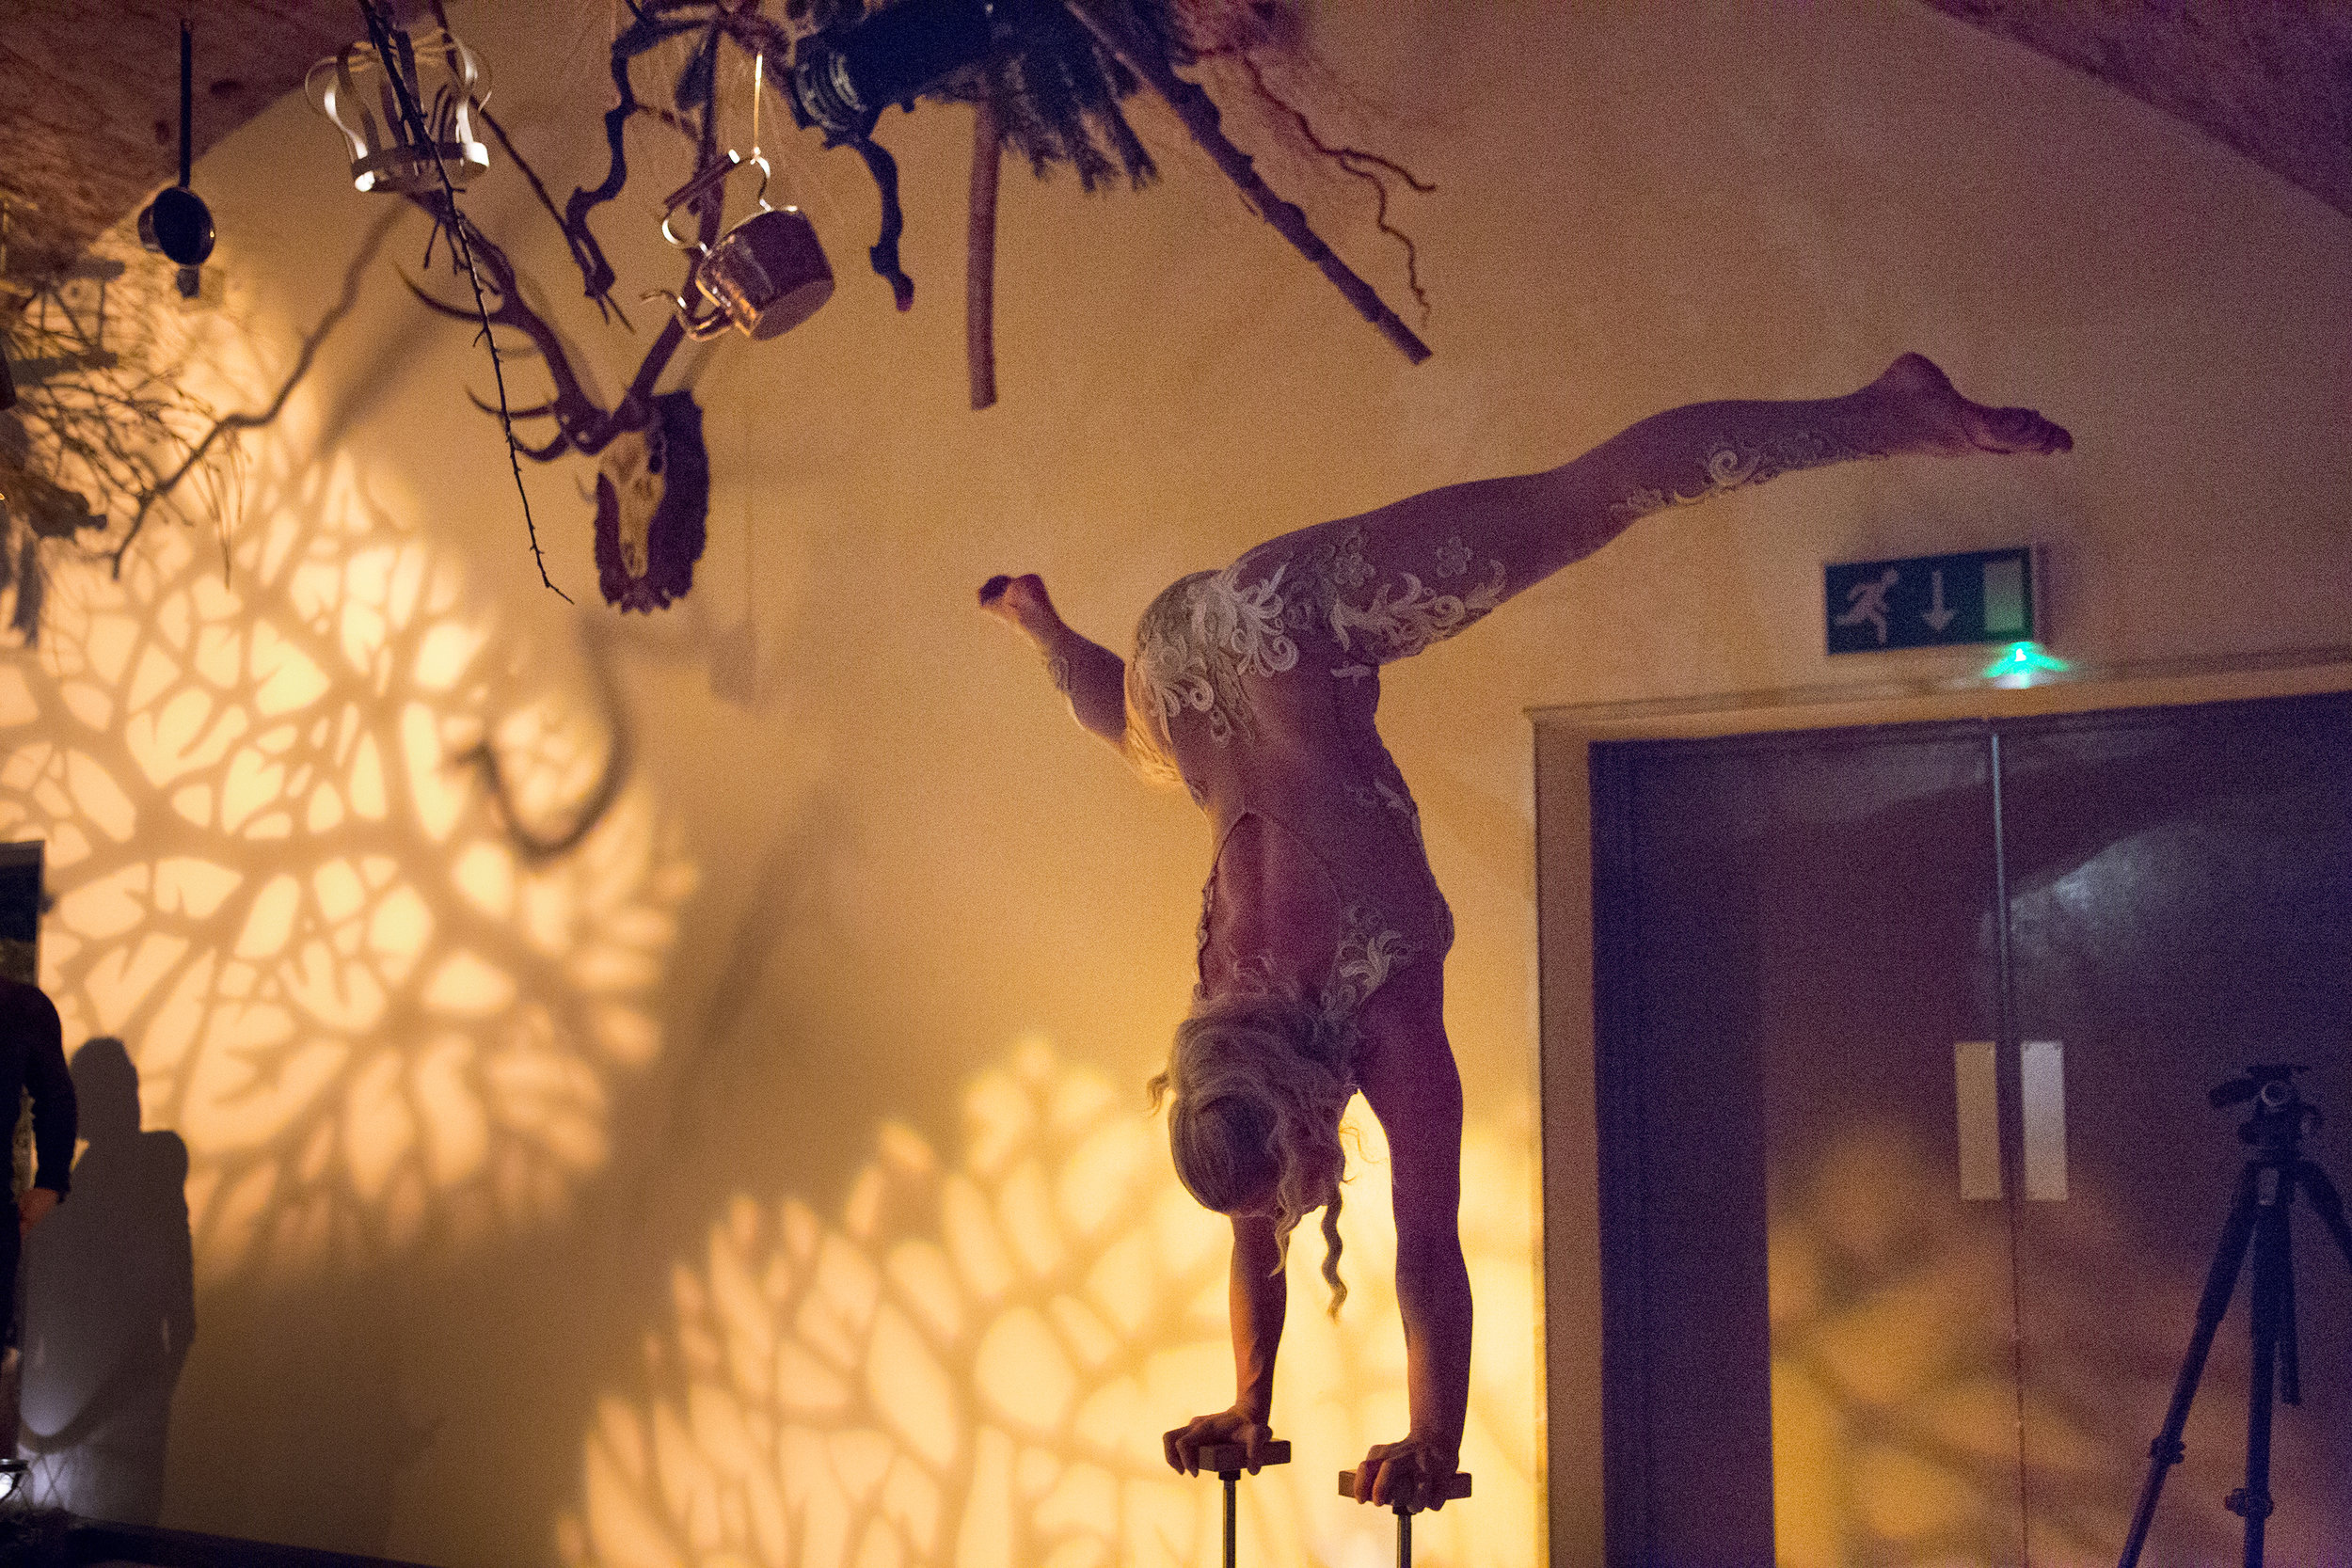 Celebrating the ethereal nature of Christmas, guests were treated to exciting entertainment such as ballet dancers, Tomte Host (Santa Claus to you and me), aerialists, nightly DJ's... - and a Scandi-disco, while 100 year old taxidermy bears decorate photo booths.